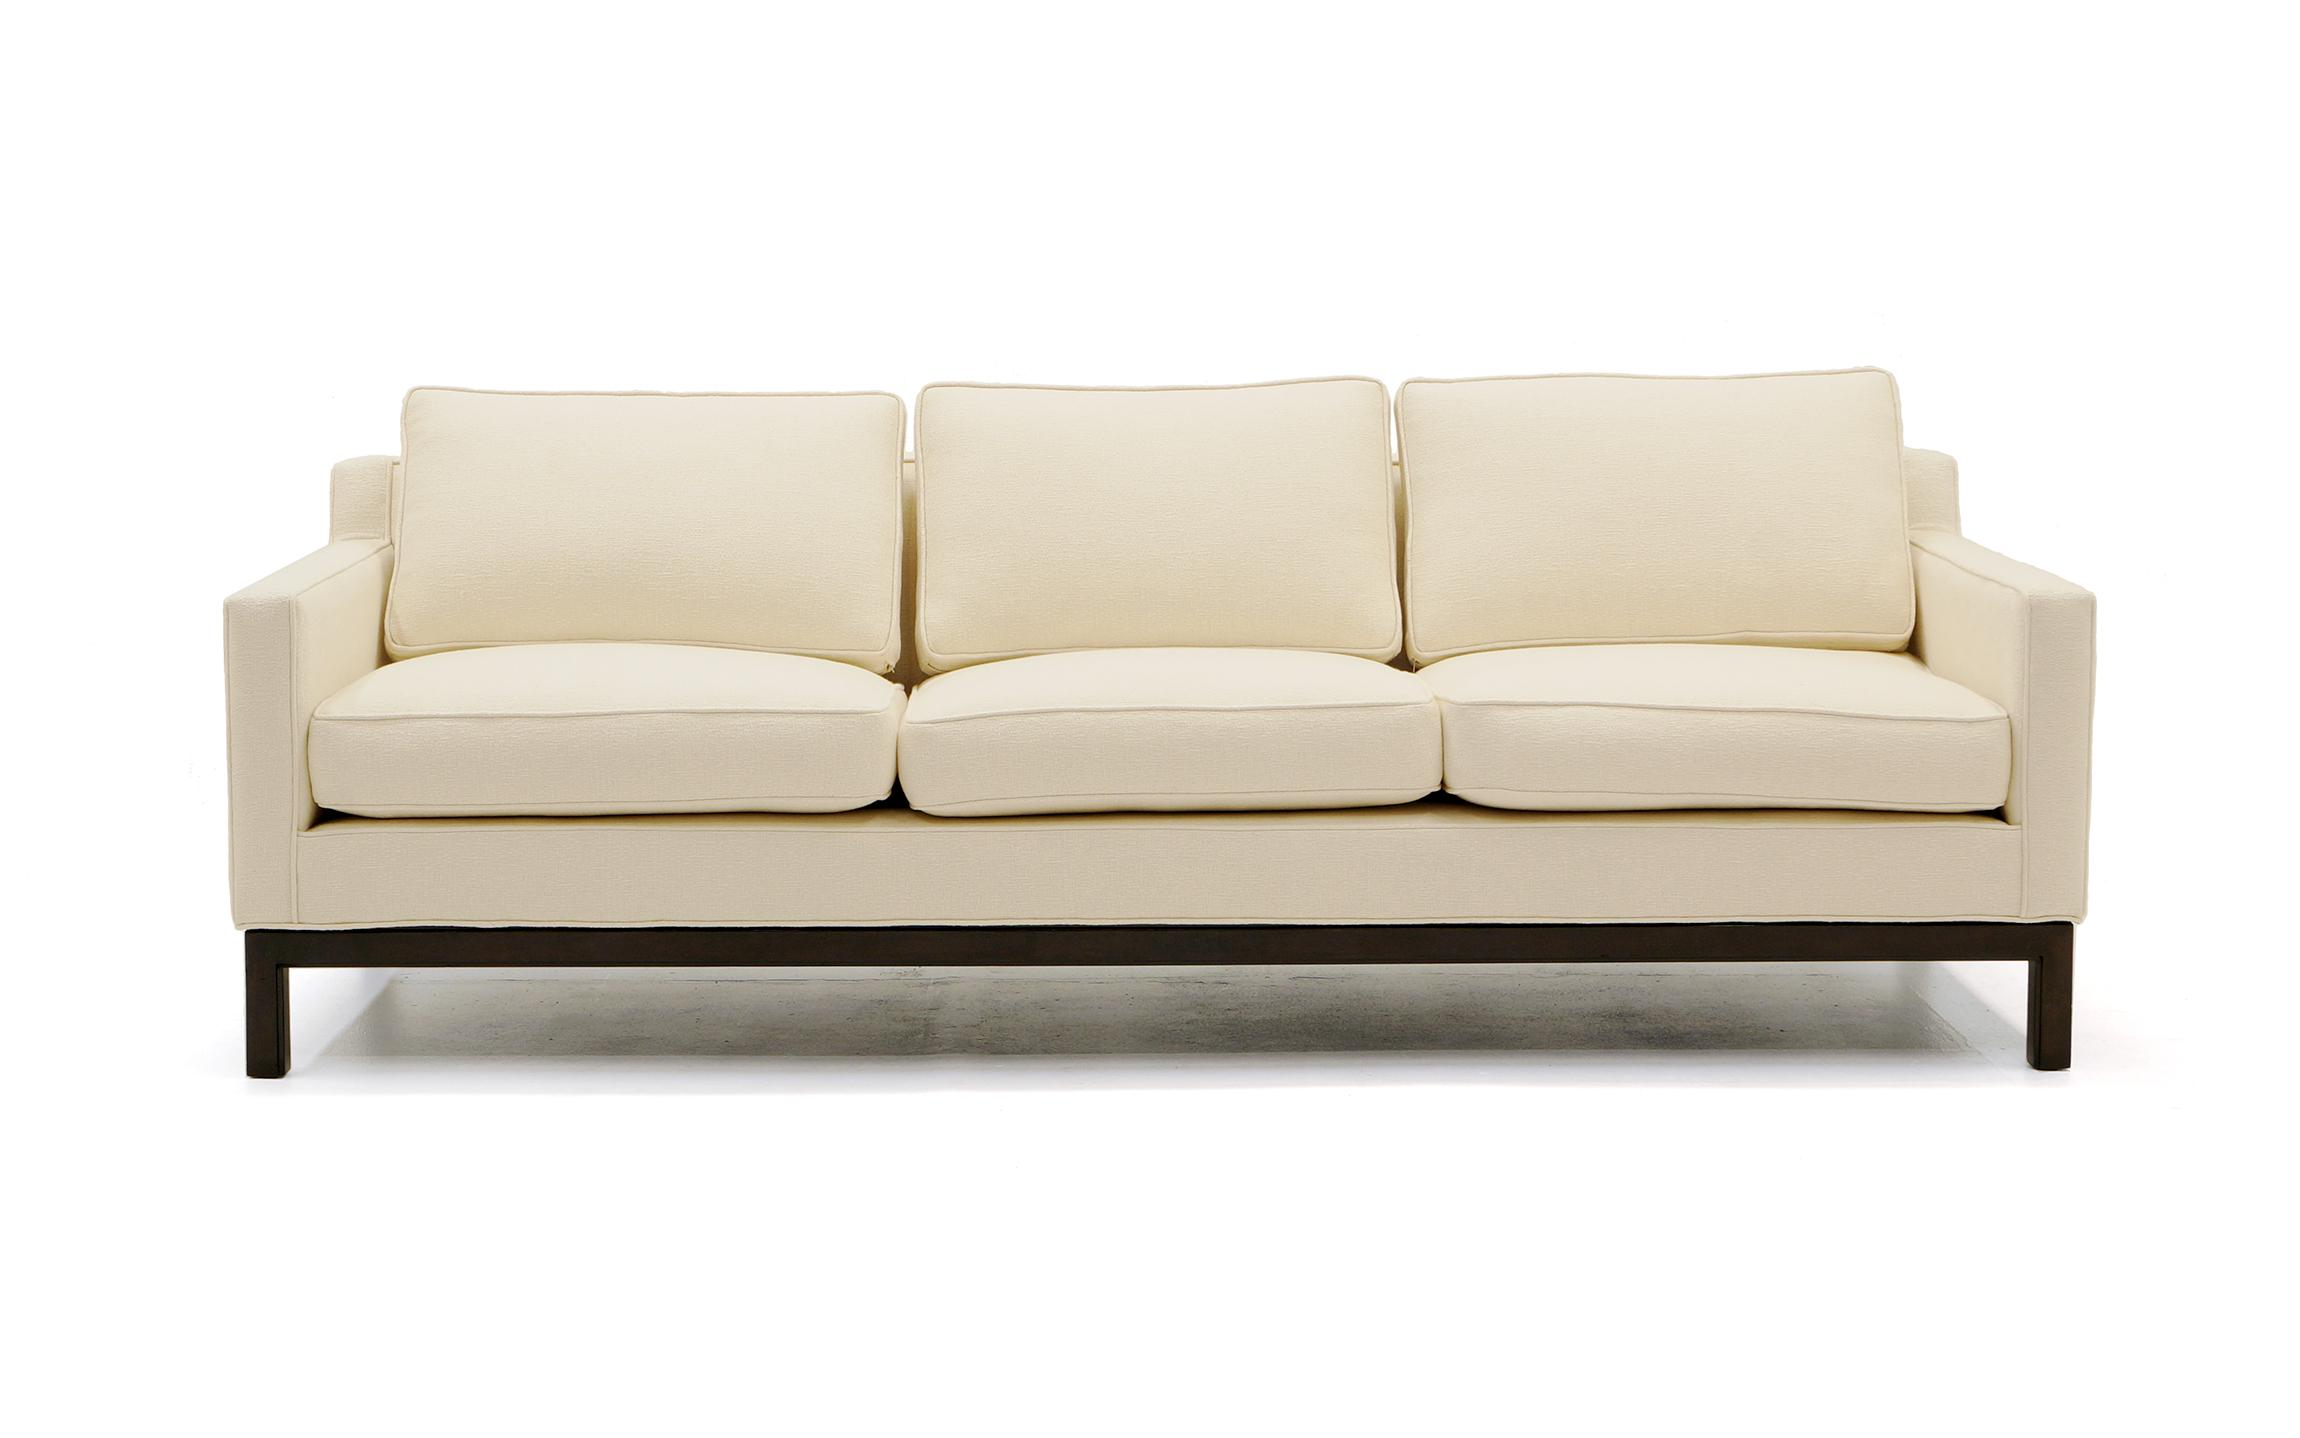 Lovely Edward Wormley for Dunbar Sofa and Loveseat  : e5e17967 5b60 4270 9e61 1edad67f50f2aspectfitampwidth640ampheight640 from www.decaso.com size 640 x 640 jpeg 20kB